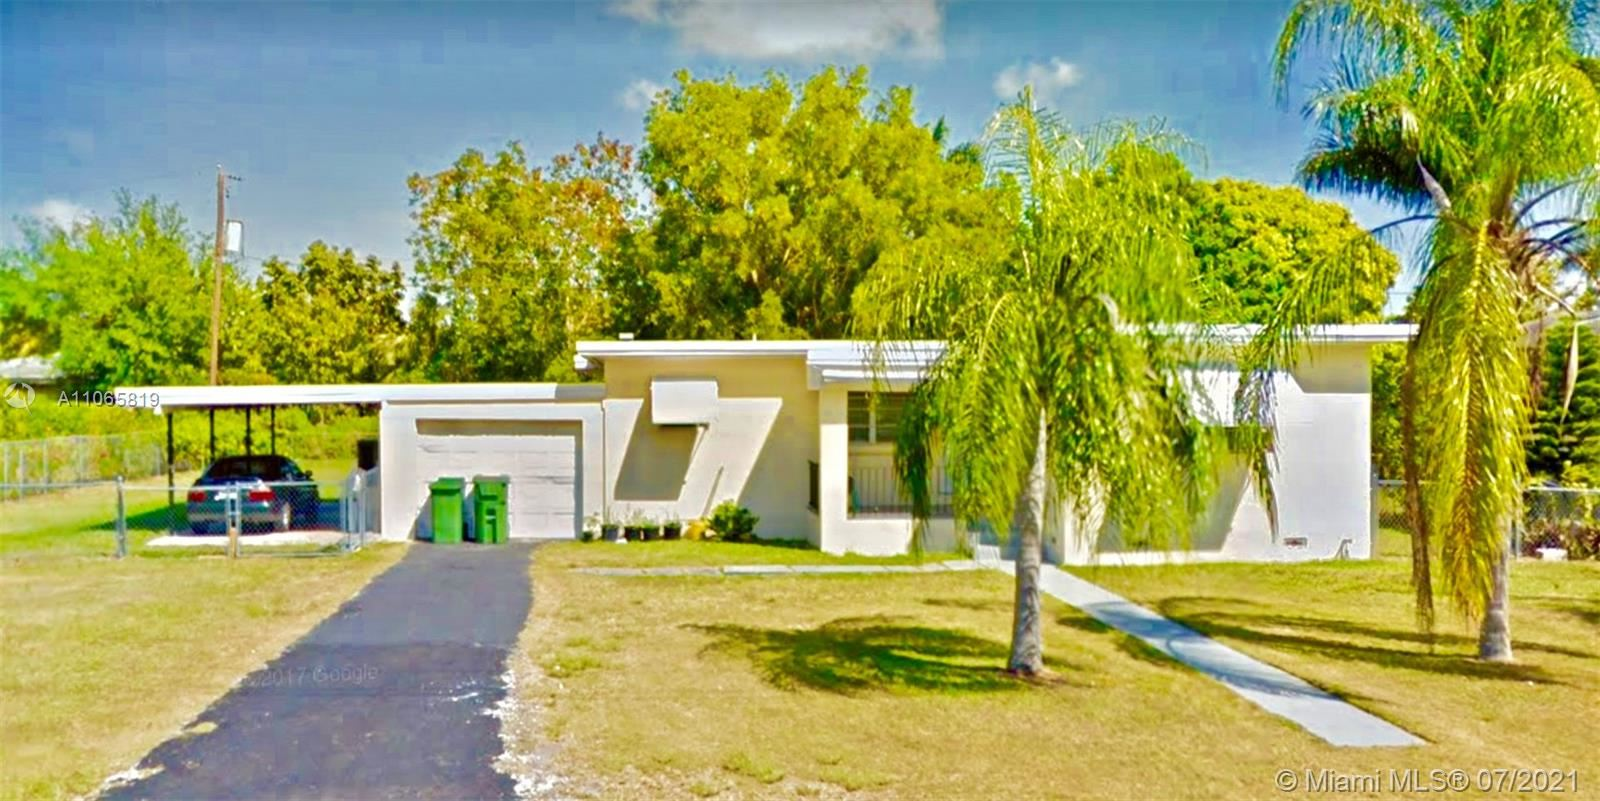 1015 NW 4th Ave, Homestead, FL 33030 - #: A11065819